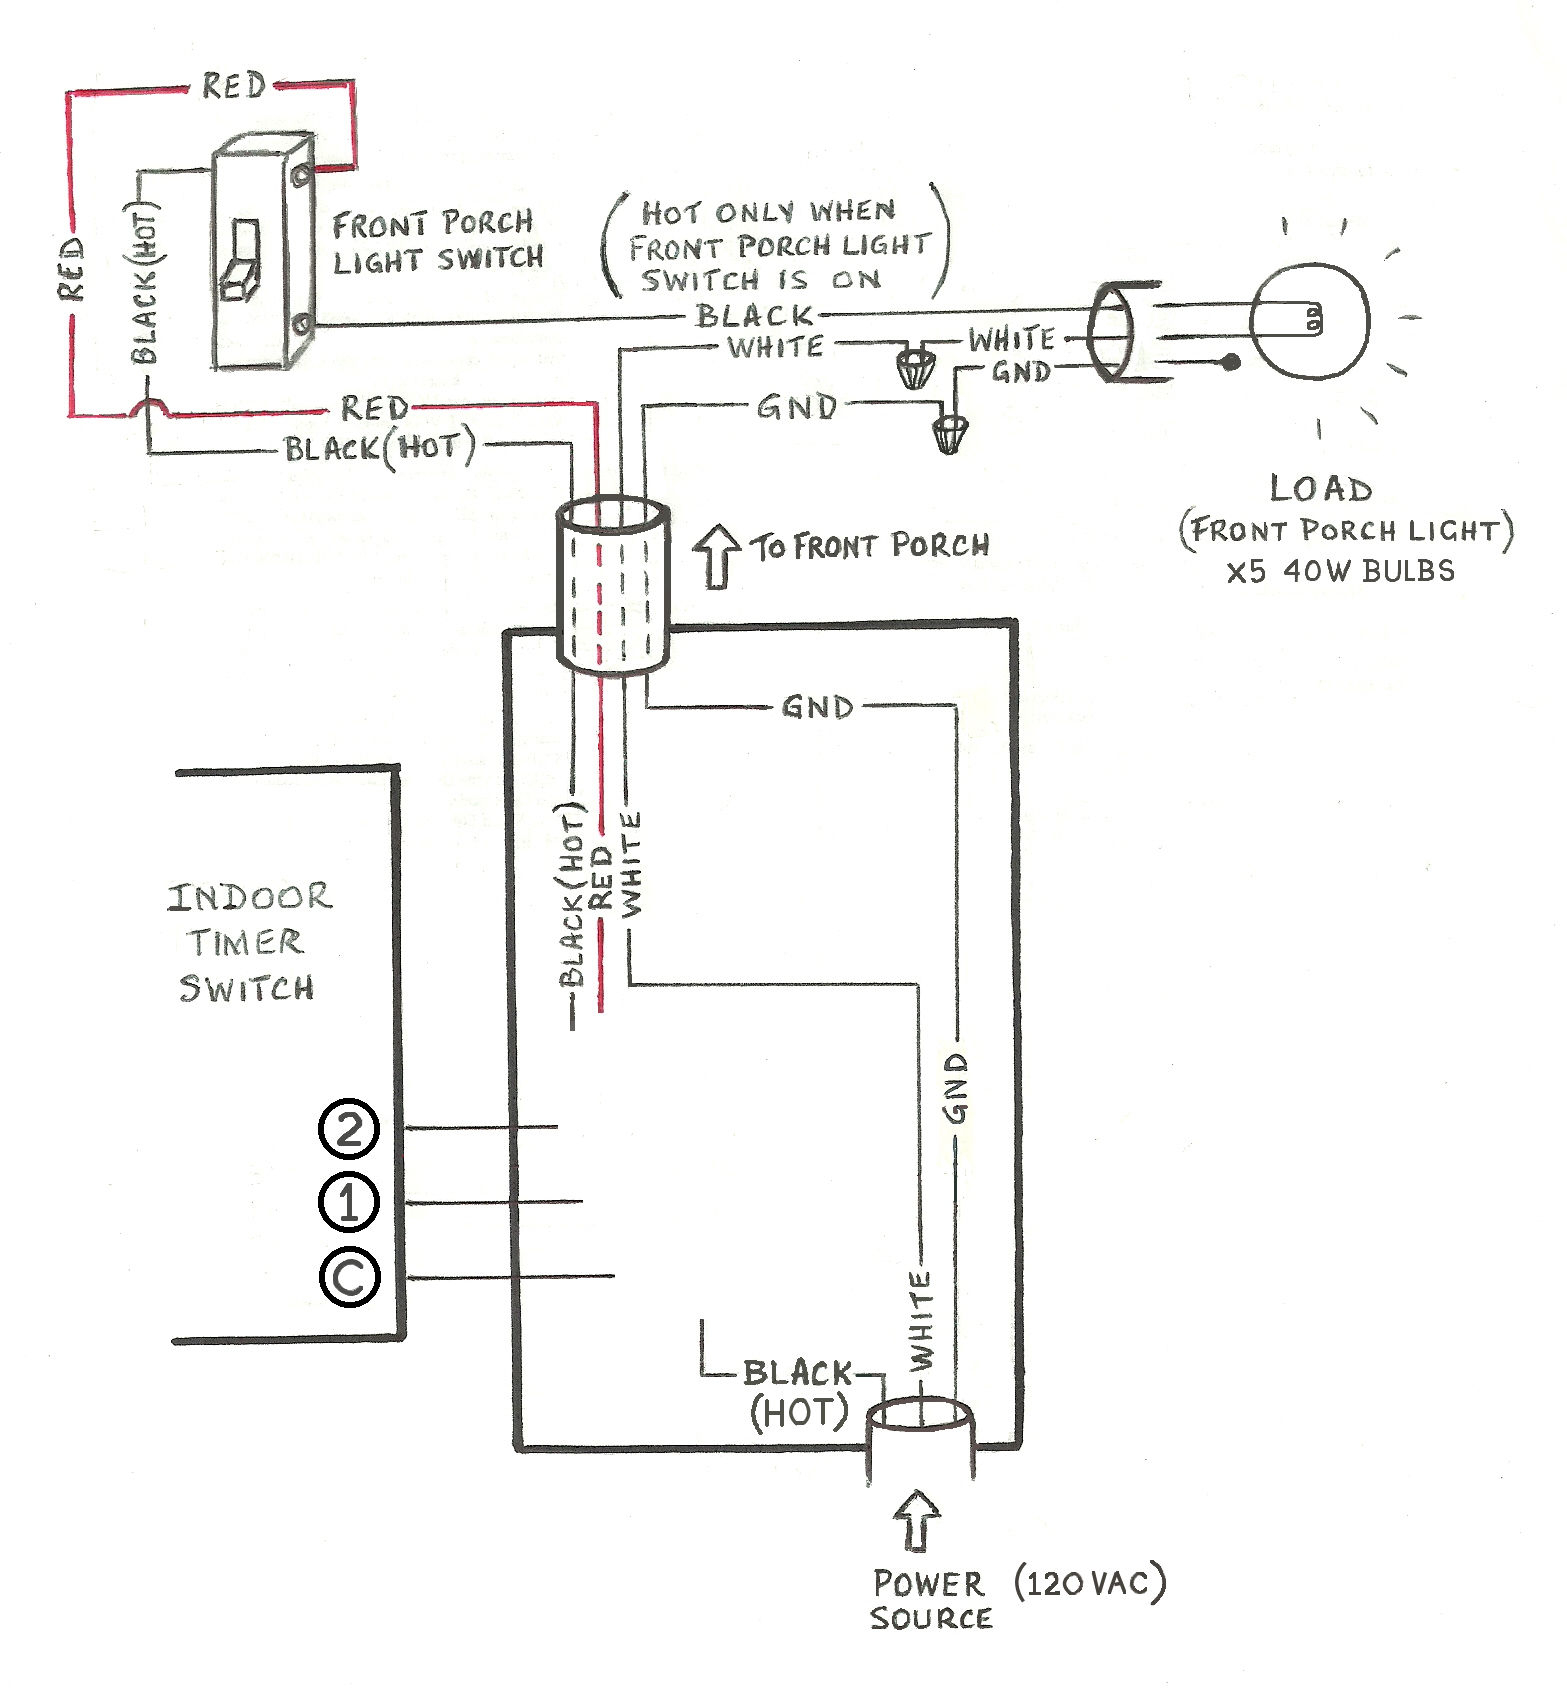 Need Help Wiring A 3-Way Honeywell Digital Timer Switch - Home - 3 Way Lamp Switch Wiring Diagram